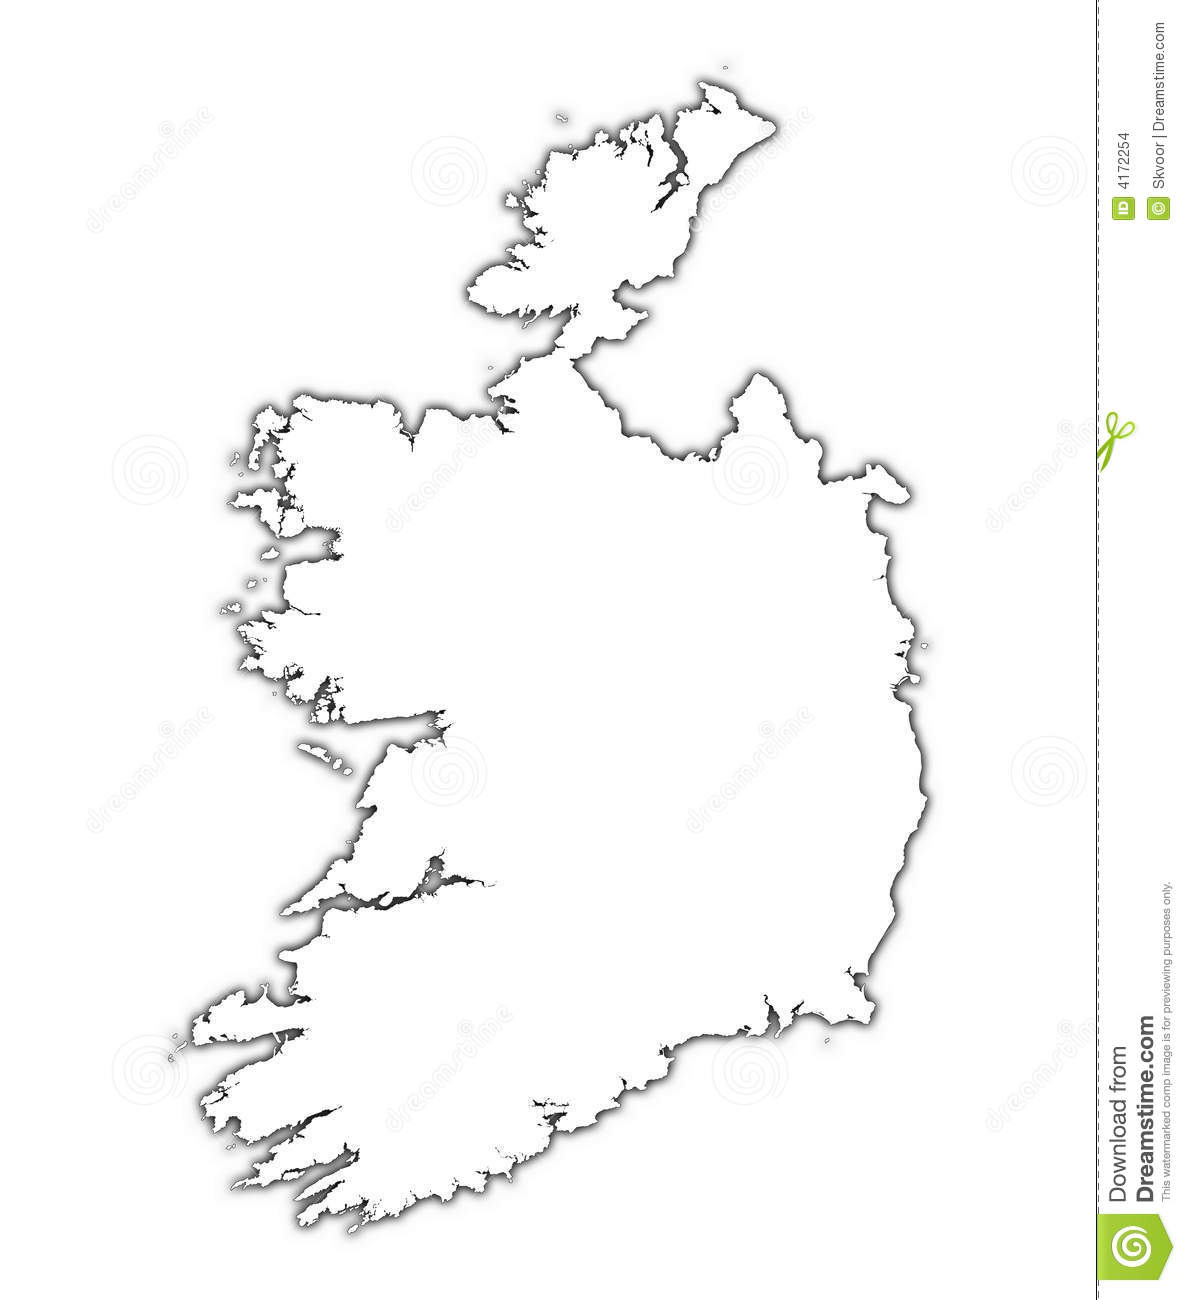 Outline Map Of Ireland.Ireland Outline Map With Shadow Stock Illustration Illustration Of